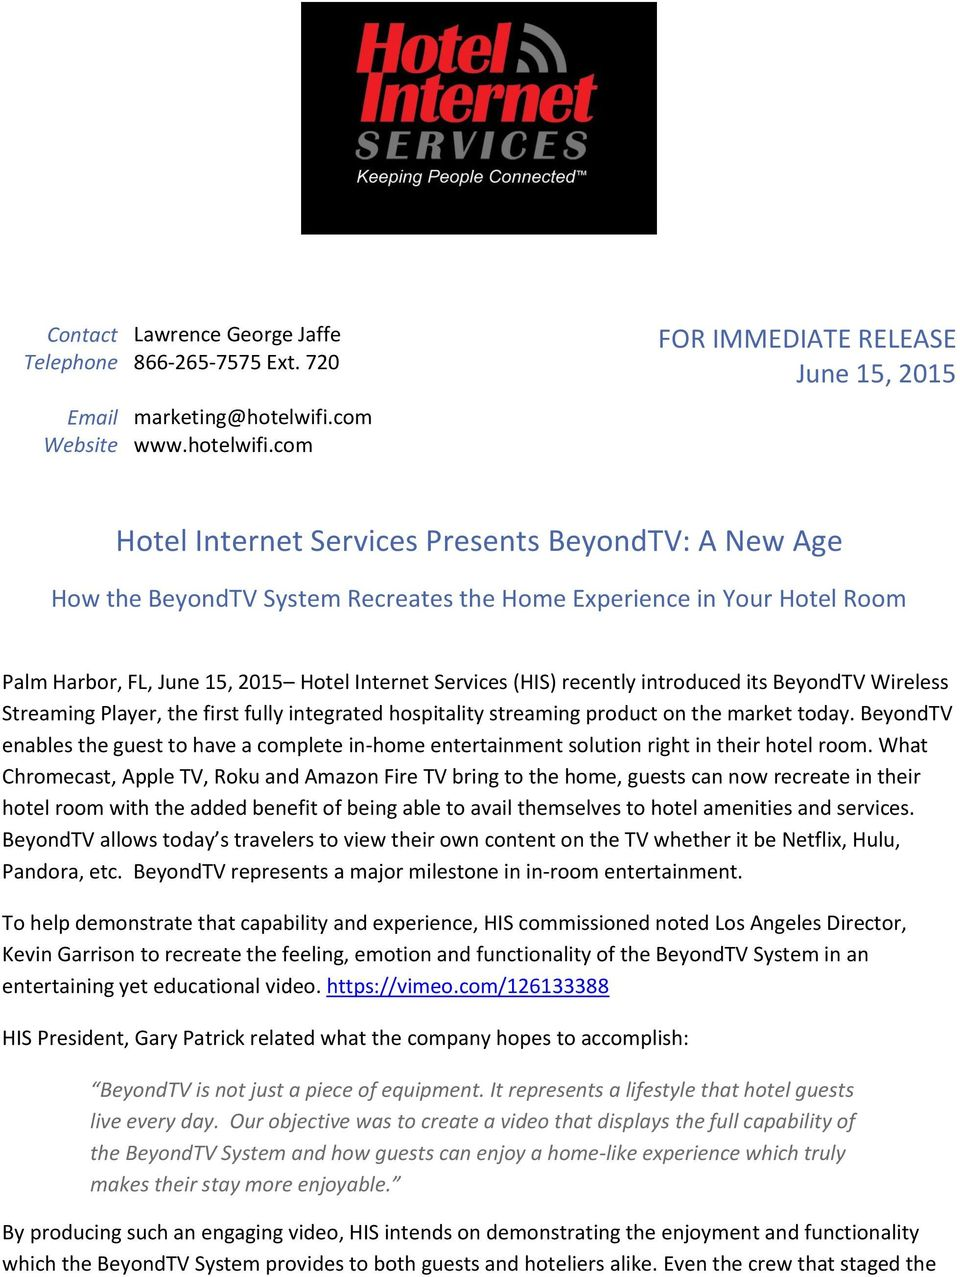 com FOR IMMEDIATE RELEASE June 15, 2015 Hotel Internet Services Presents BeyondTV: A New Age How the BeyondTV System Recreates the Home Experience in Your Hotel Room Palm Harbor, FL, June 15, 2015